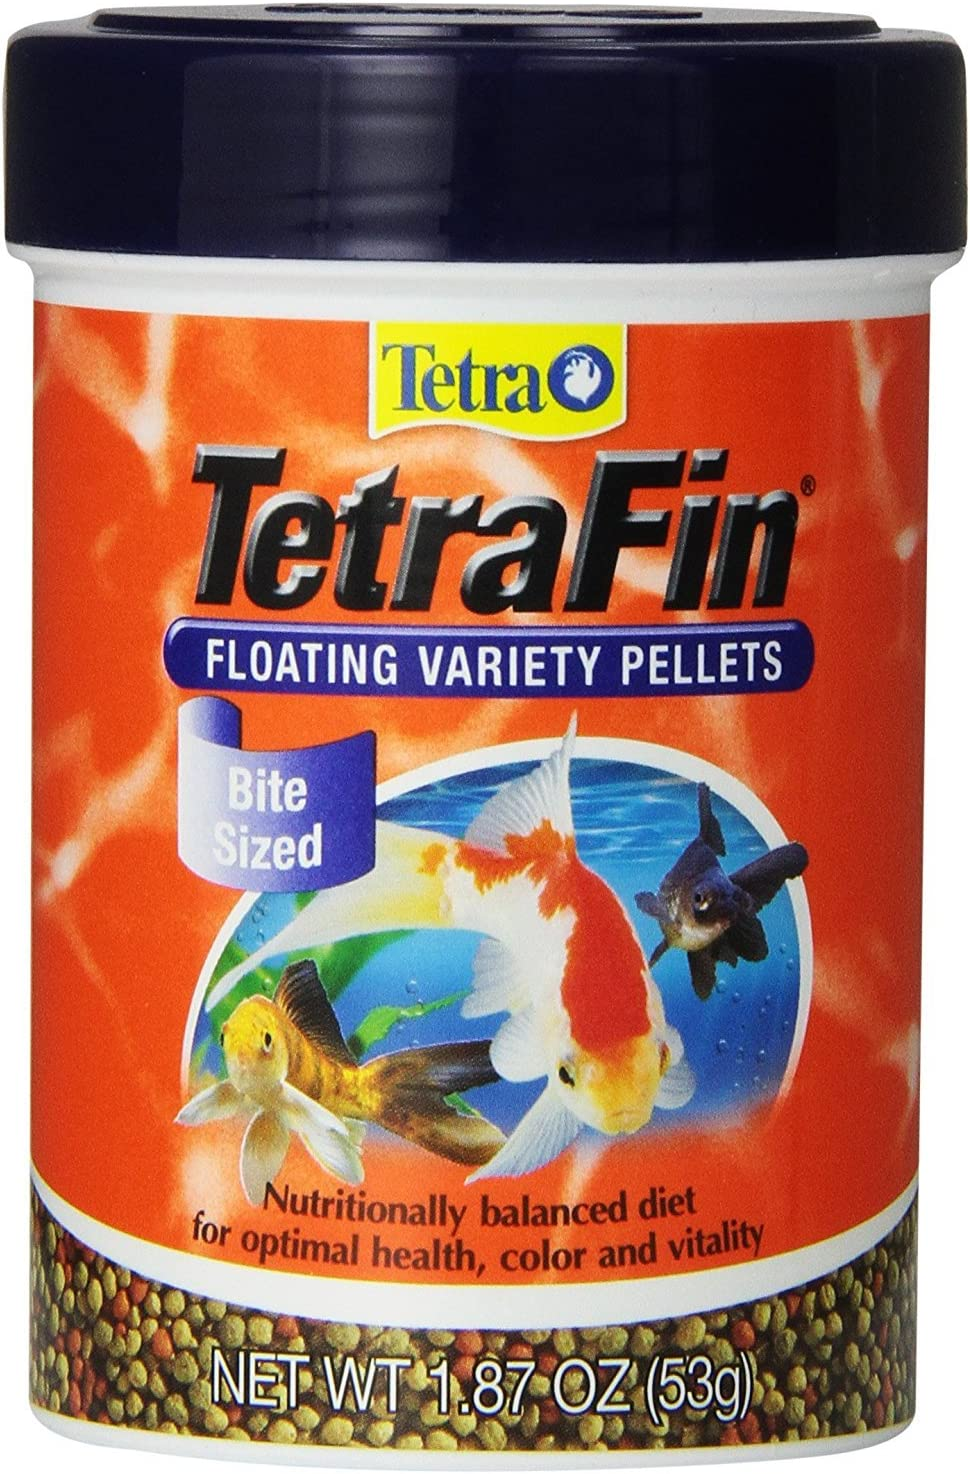 Tetra 77035 Tetrafin Floating Variety Pellets, 1.87 Oz (4 Pack)